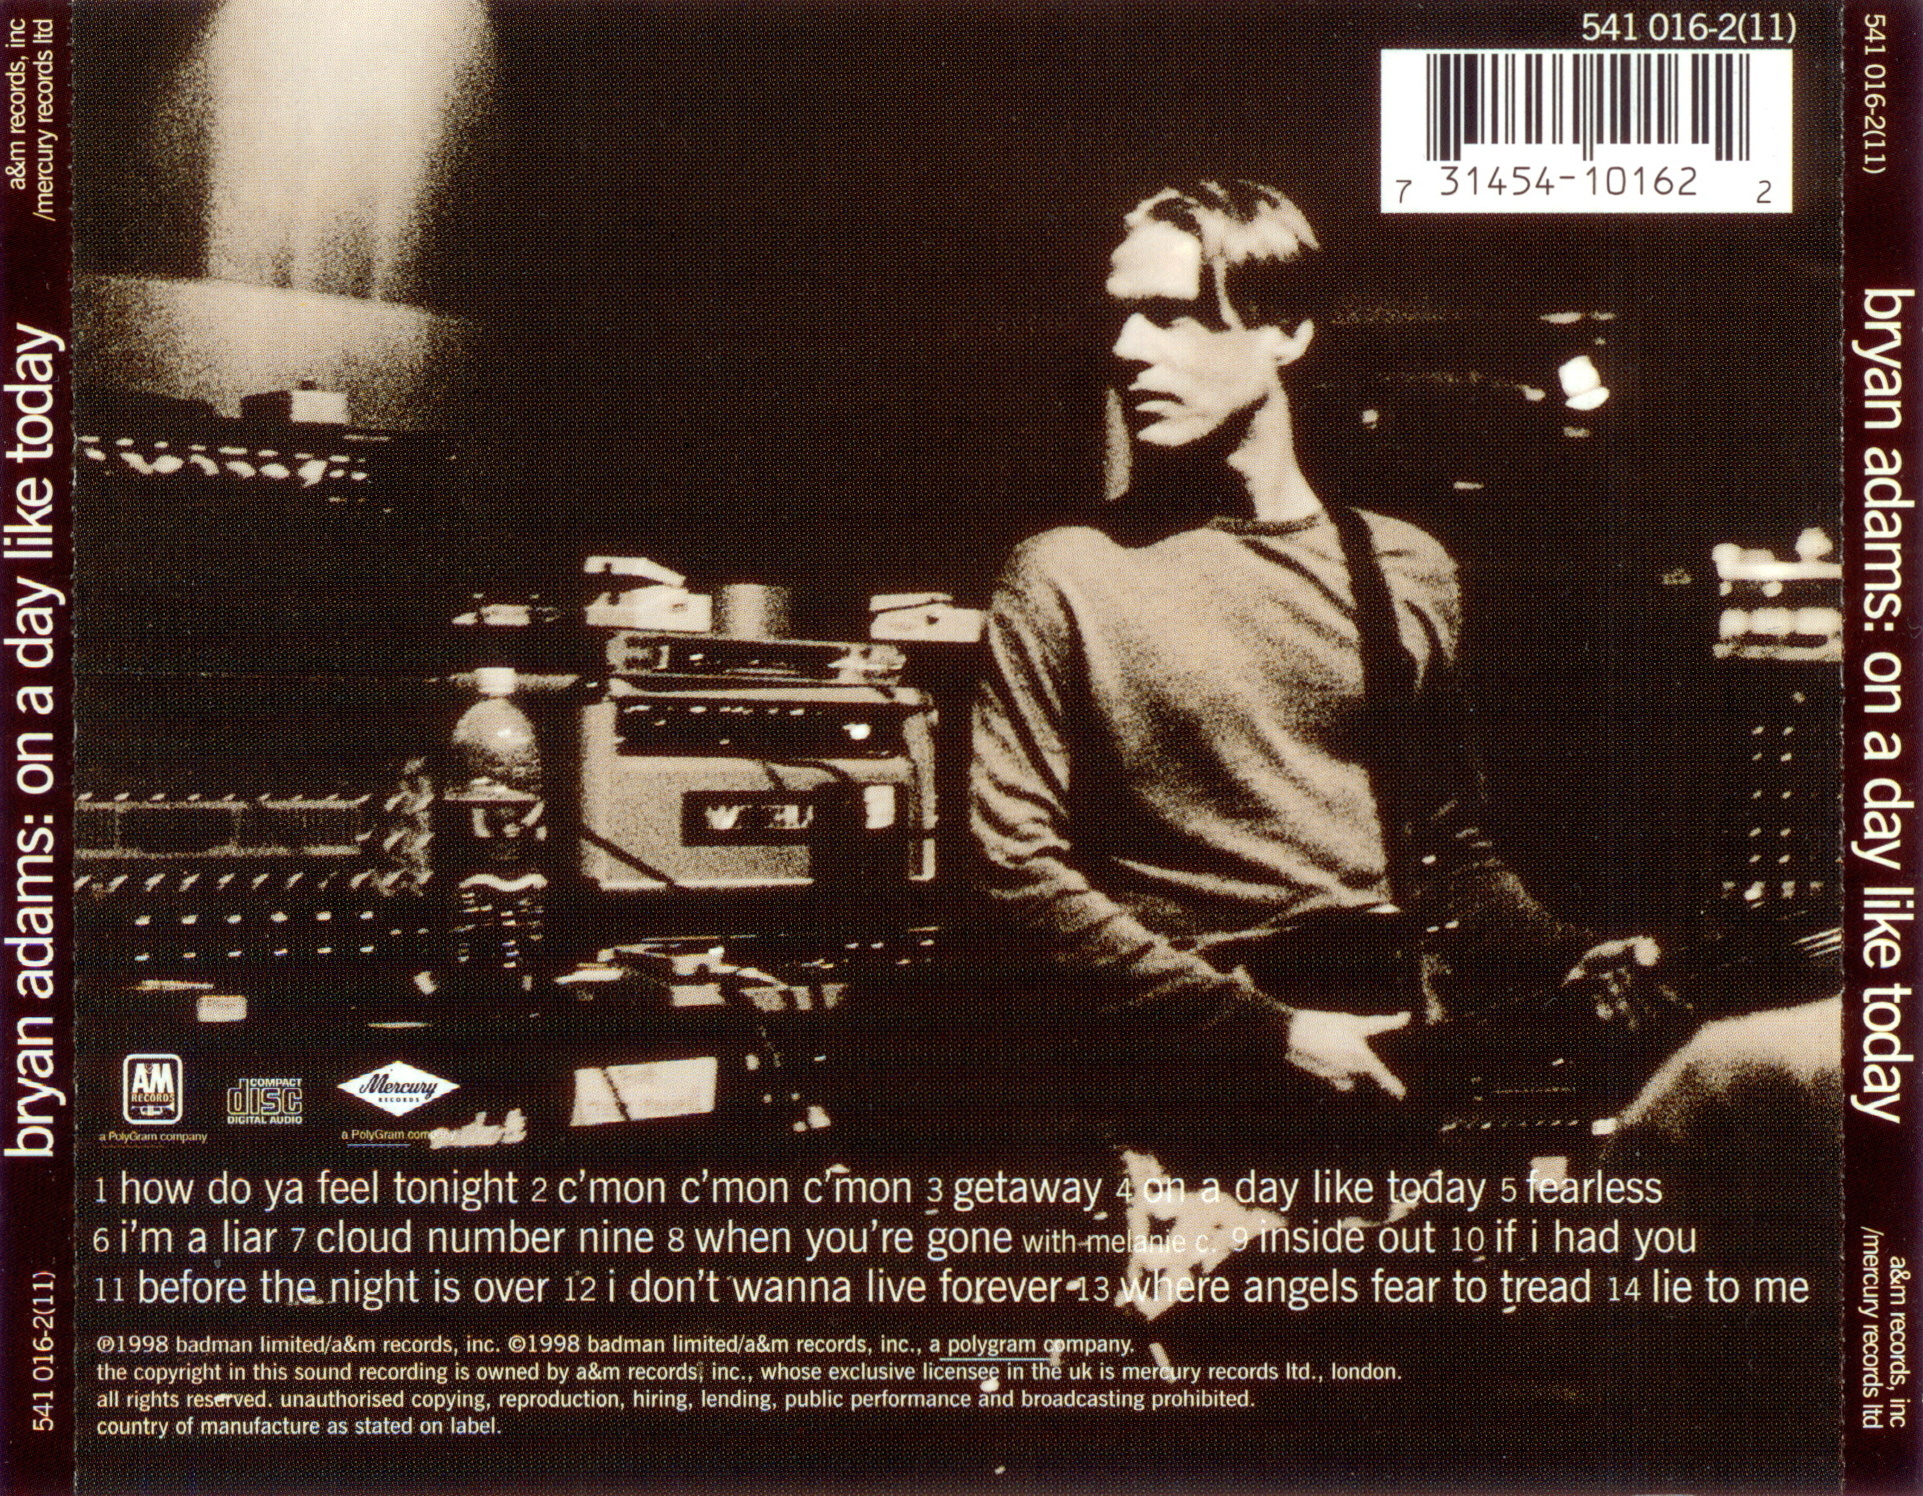 Bryan Adams - On a Day Like Today Lyrics and Tracklist ...